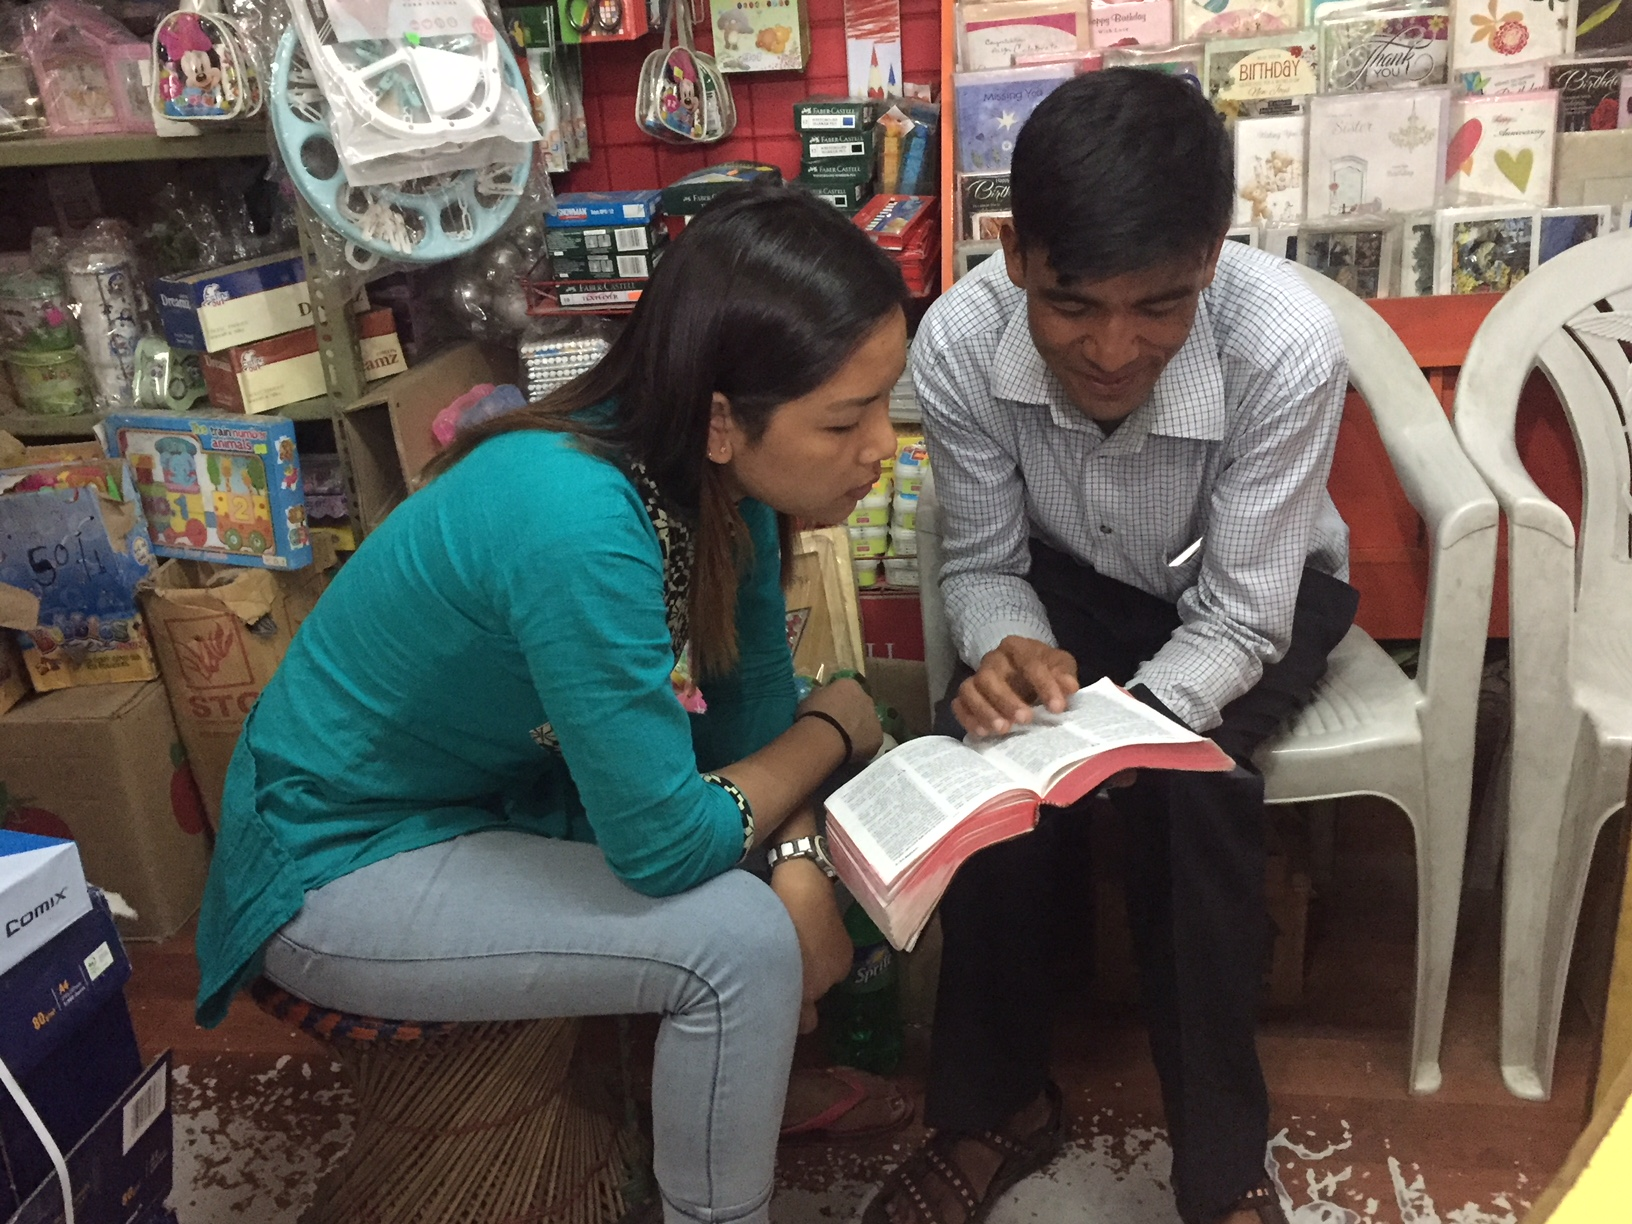 One of the brothers from Bishnu's house church shares from the Bible with the aforementioned young woman.